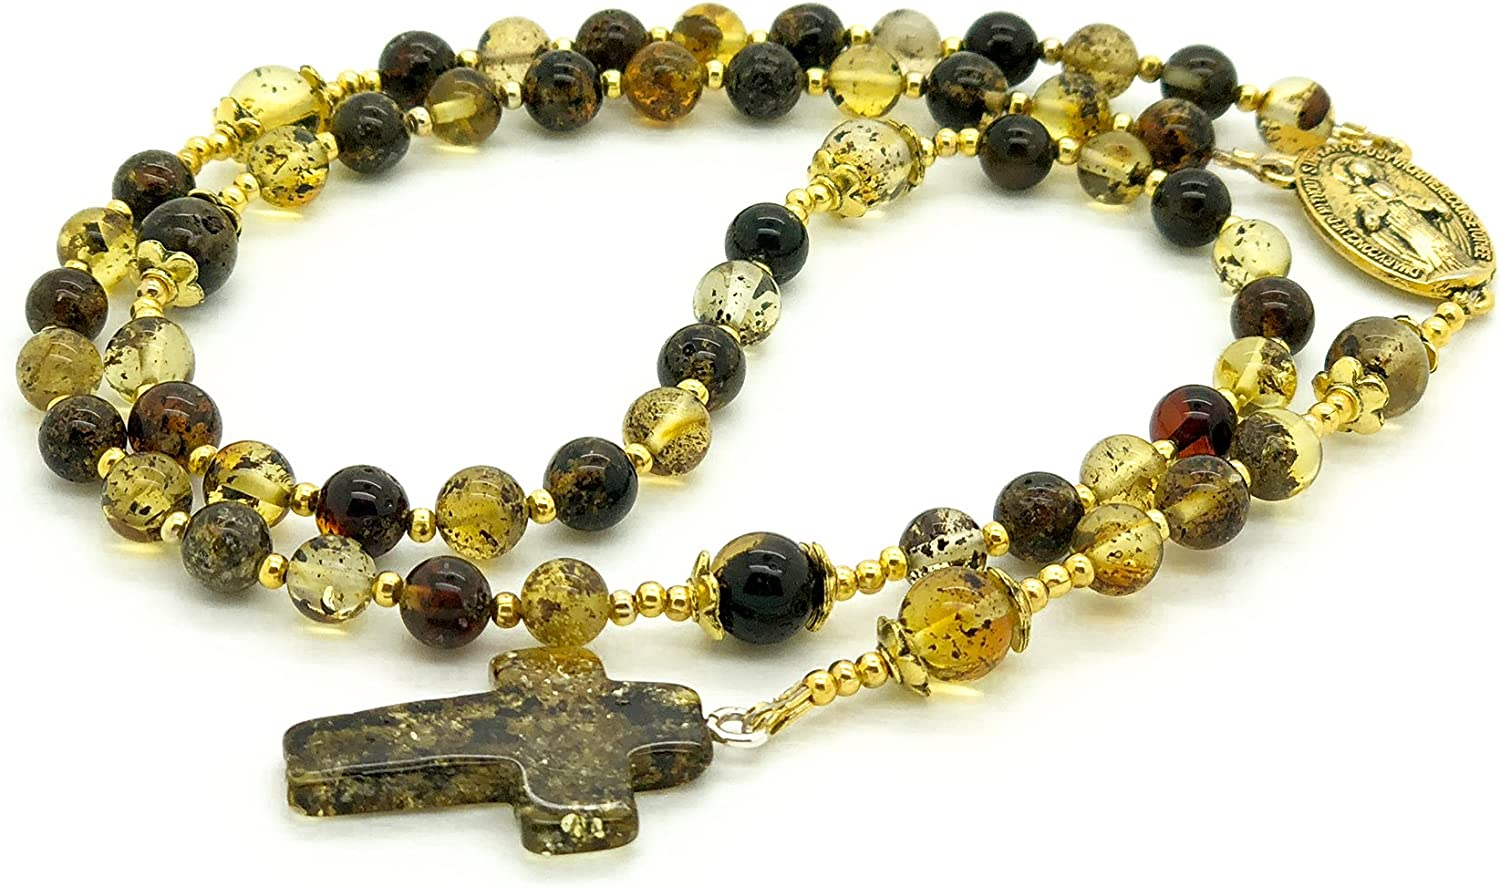 Max 65% OFF Catholic Prayer Beads Necklace Outlet sale feature - Amber Rosa Green Baltic Natural